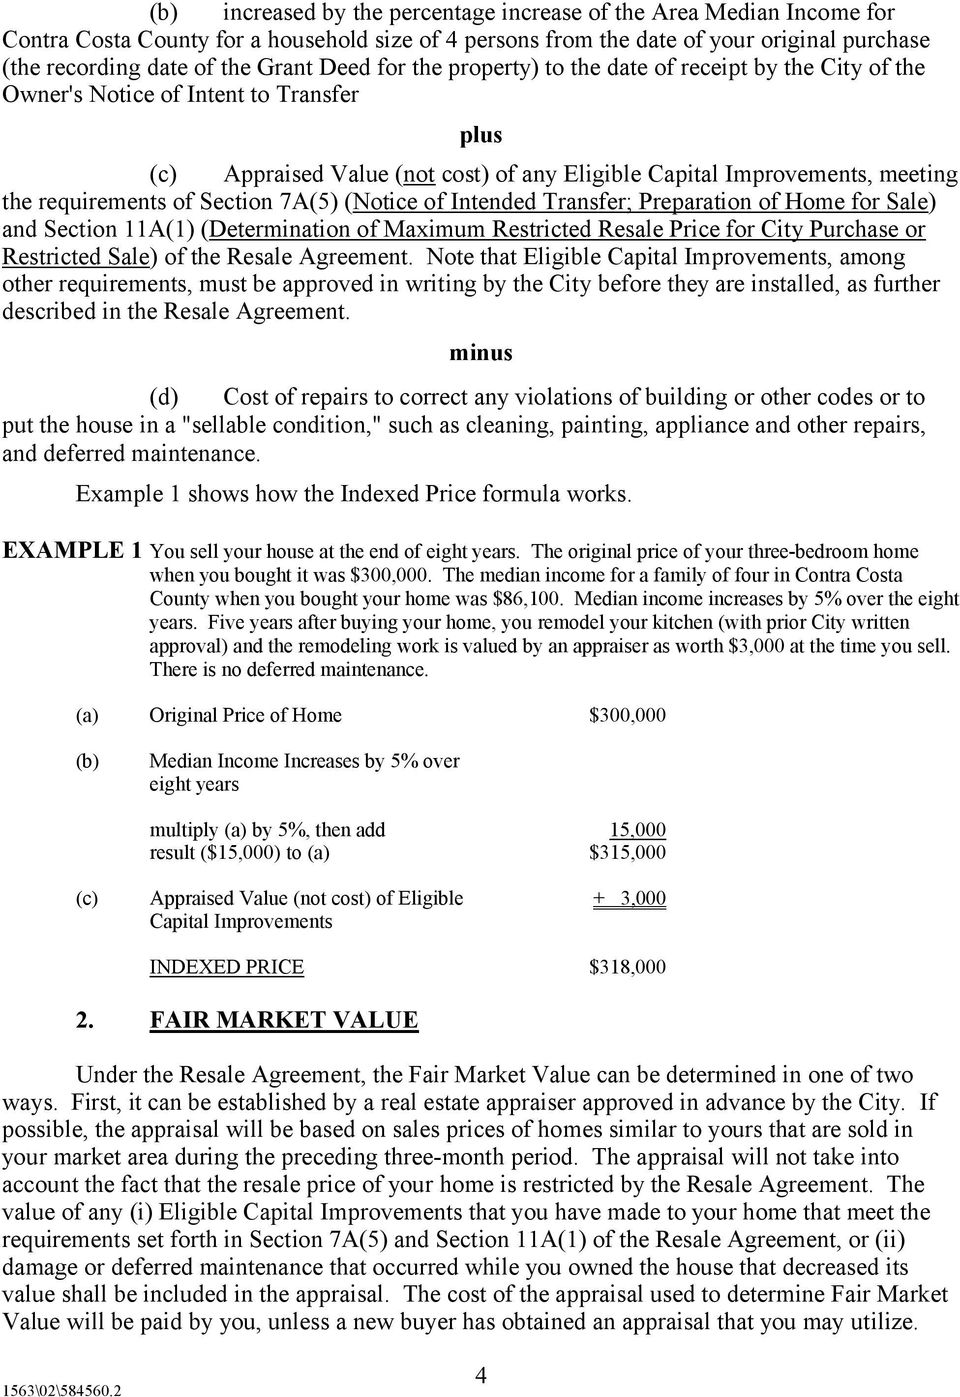 requirements of Section 7A(5) (Notice of Intended Transfer; Preparation of Home for Sale) and Section 11A(1) (Determination of Maximum Restricted Resale Price for City Purchase or Restricted Sale) of